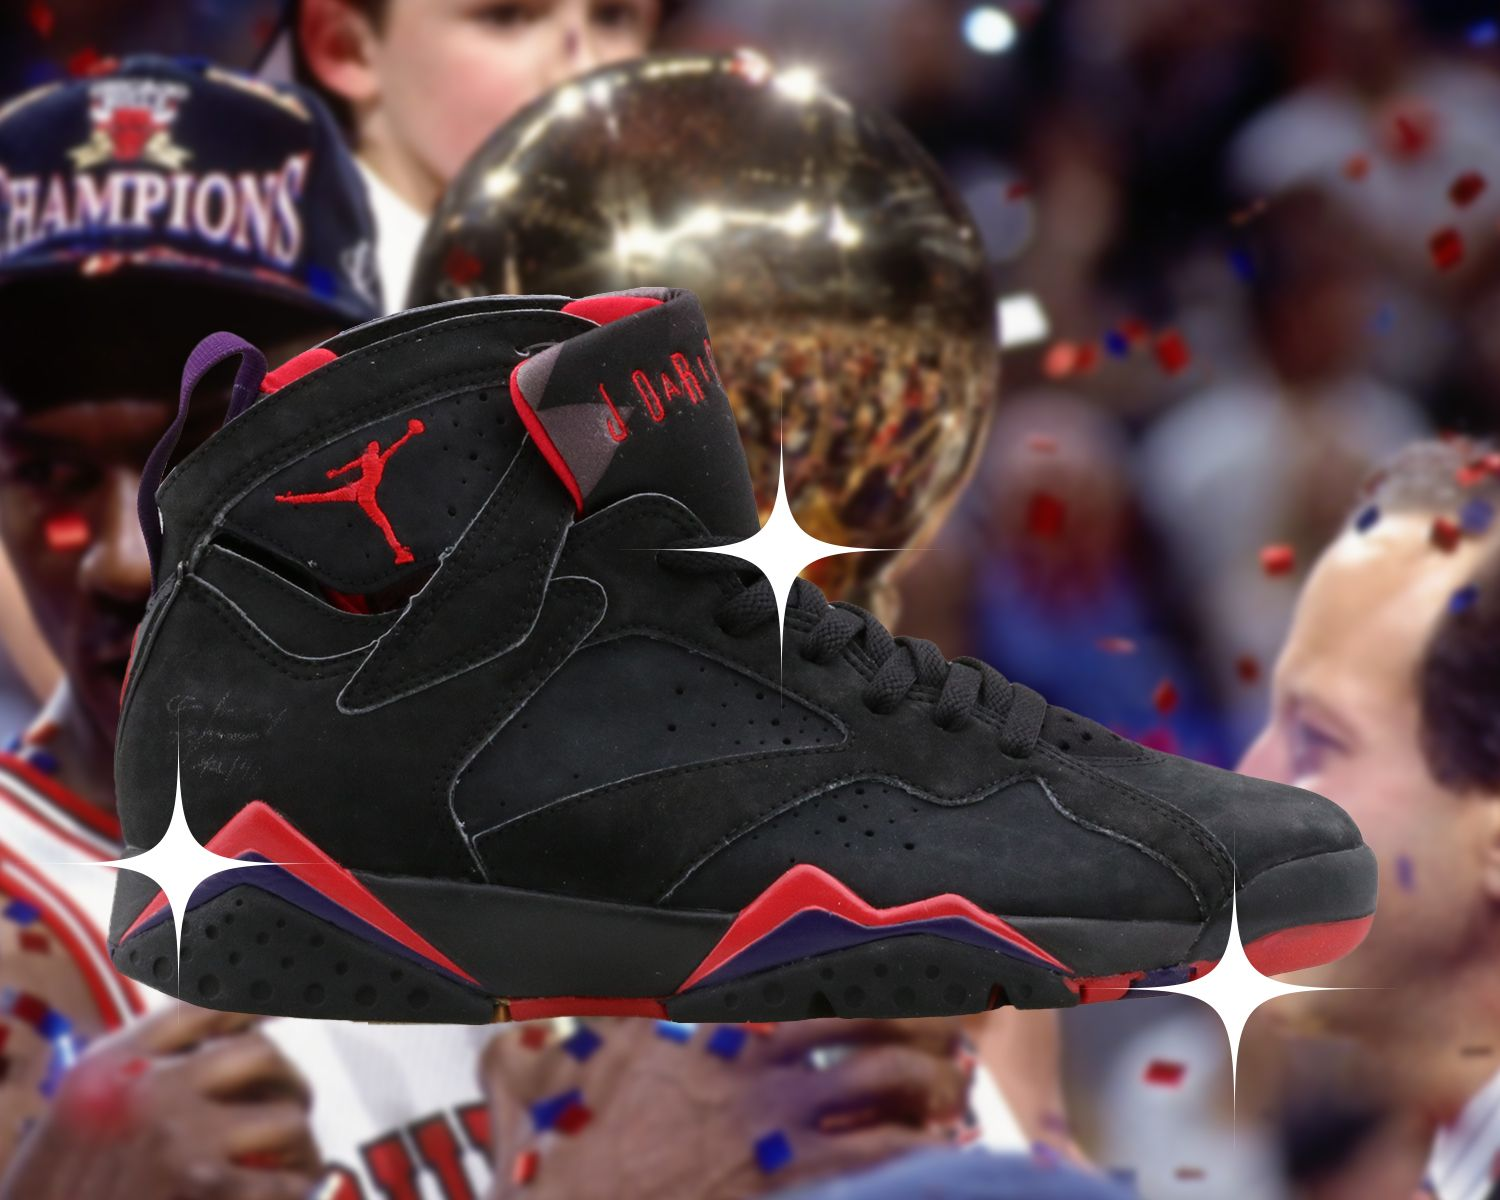 The 6 Sneakers Michael Jordan Wore When He Became a Champion 17